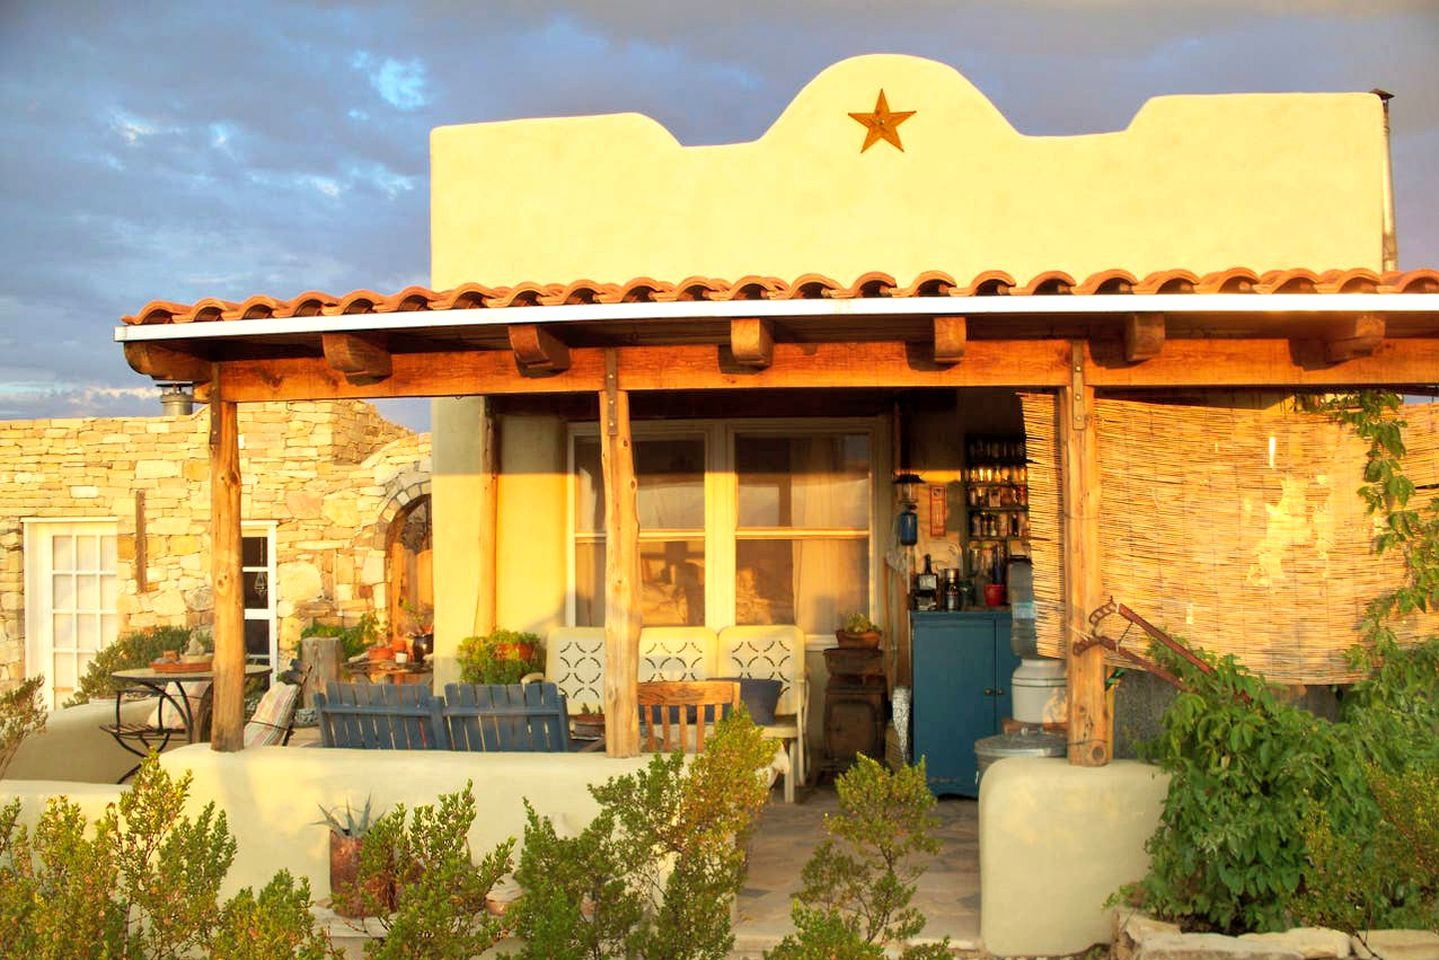 Cottages (Terlingua, Texas, United States)